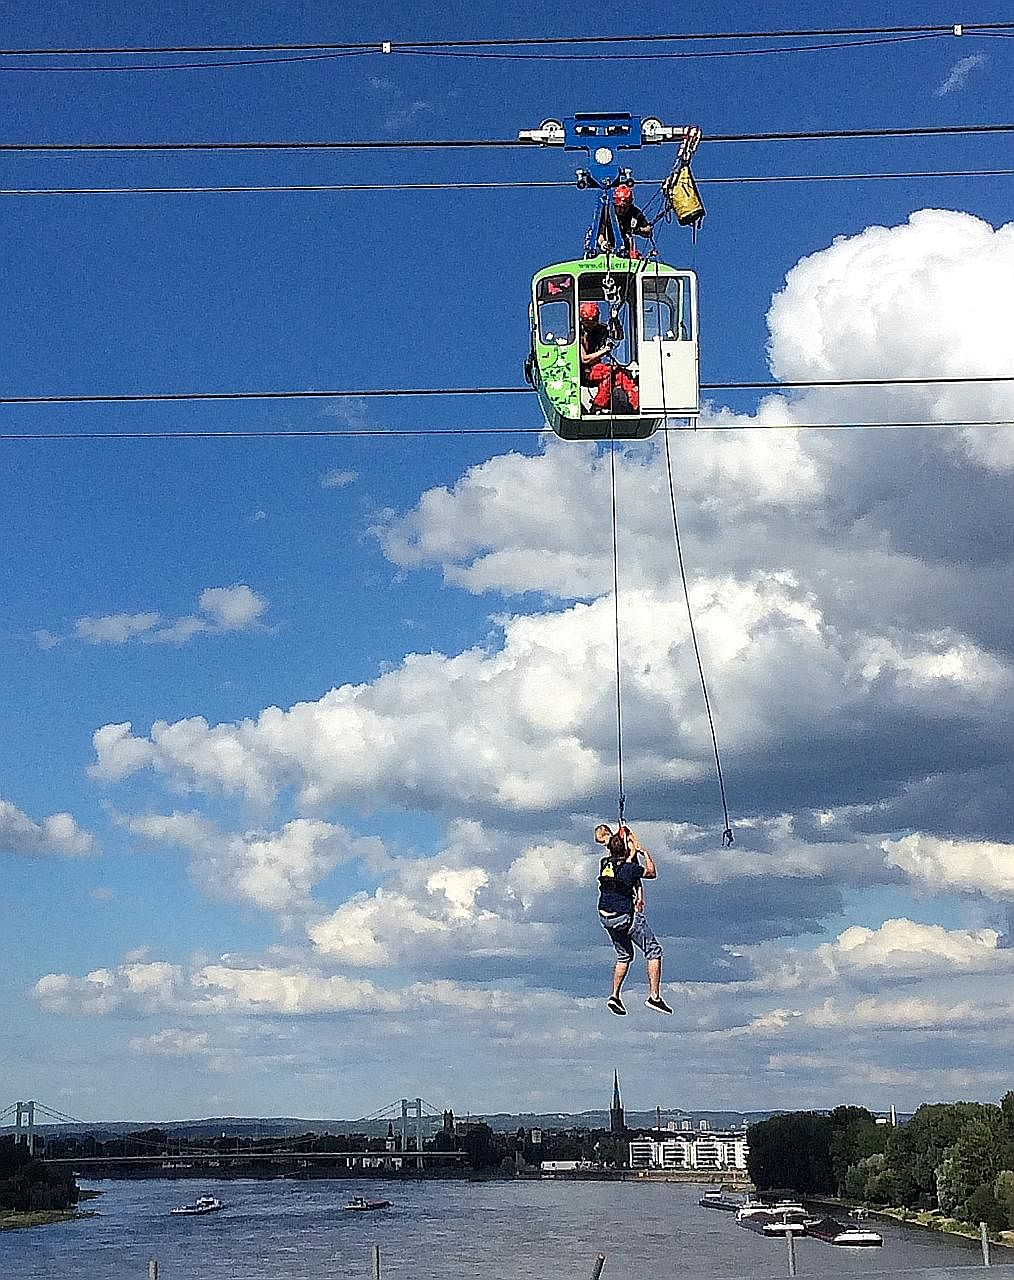 A man and his child being rescued from a cable car over the Rhine River in Cologne, Germany, on Sunday. A cable car had crashed into a support pillar, stranding dozens of passengers in midair.